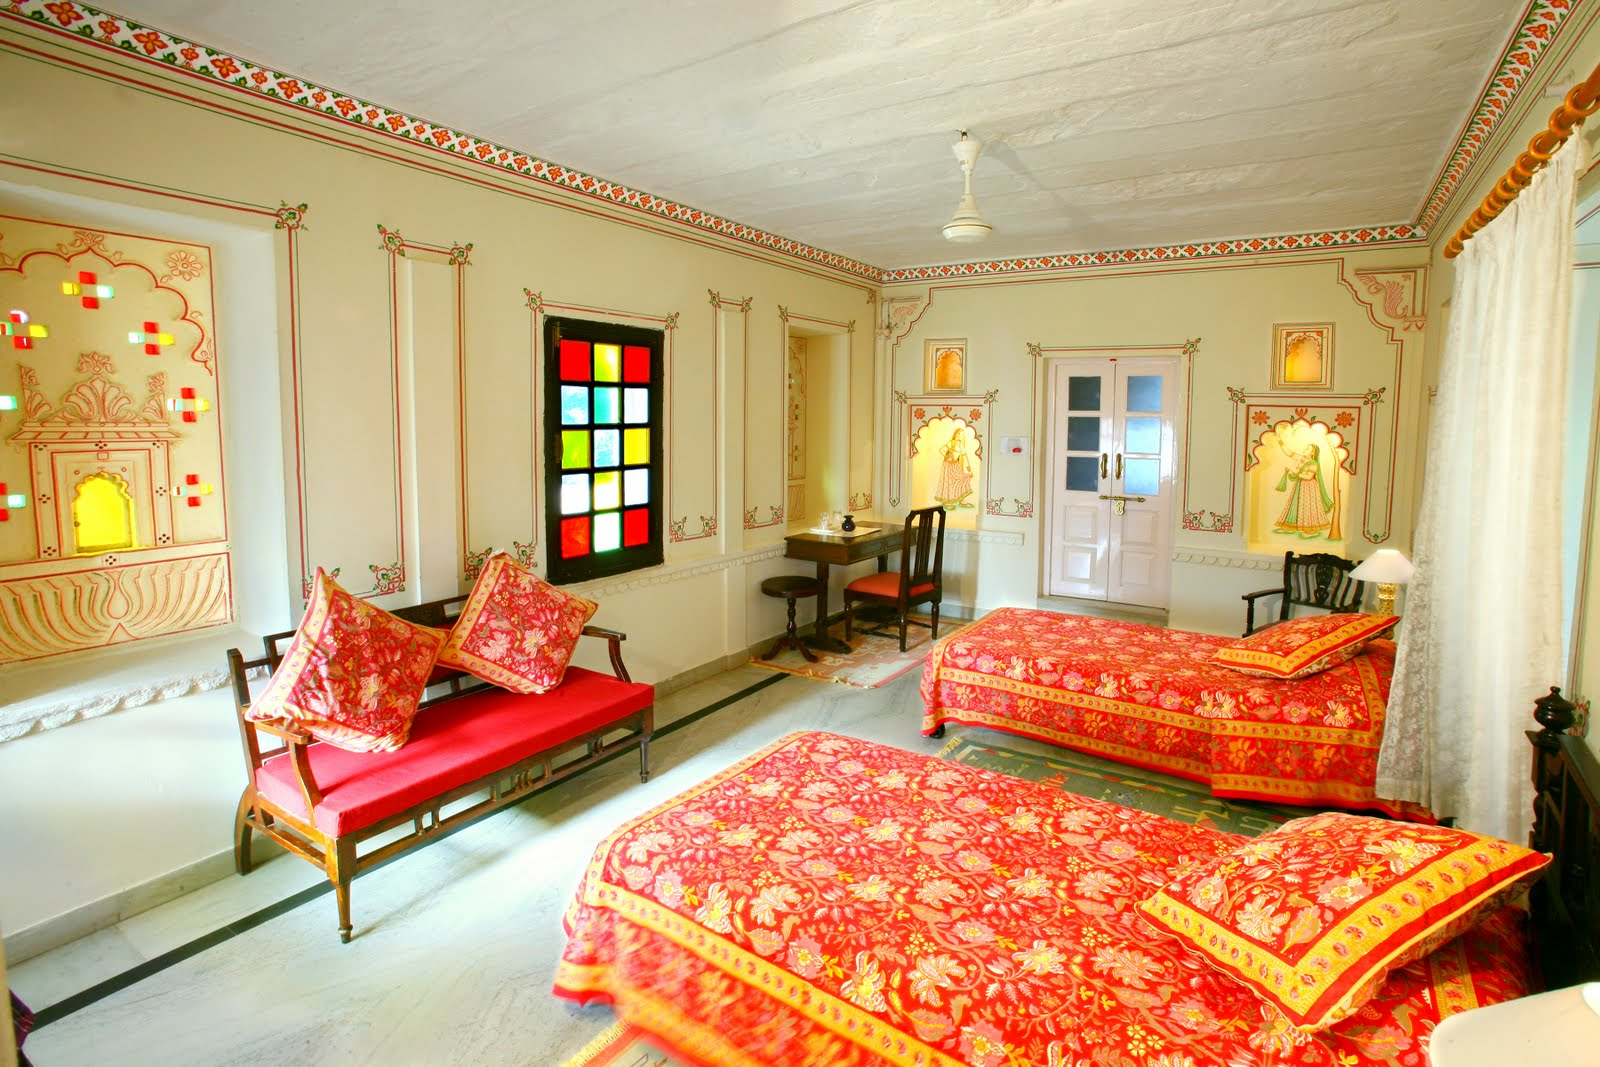 Rajasthani style interior design ideas palace interiors for Indian interior design